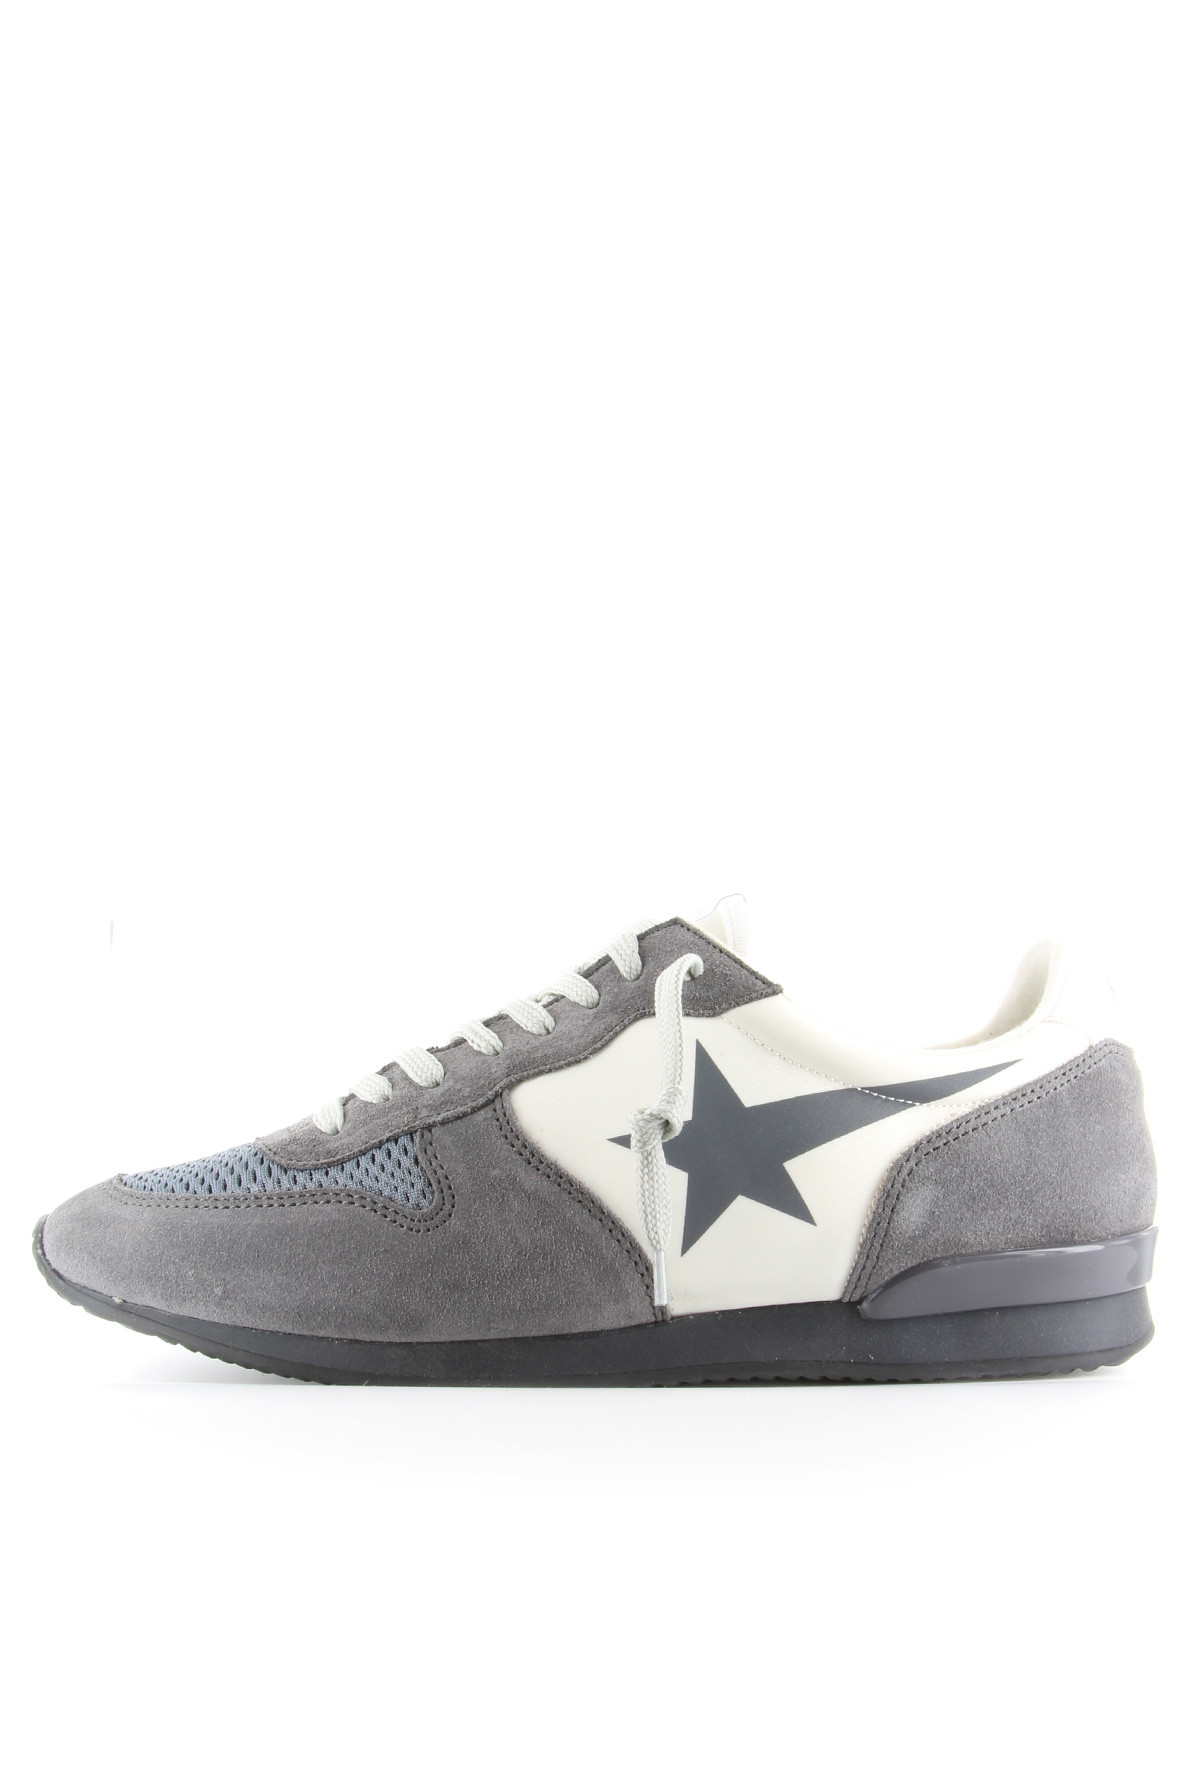 BASKETS HAUS GOLDEN GOOSE GRISES HALLEY H31MS362.C5